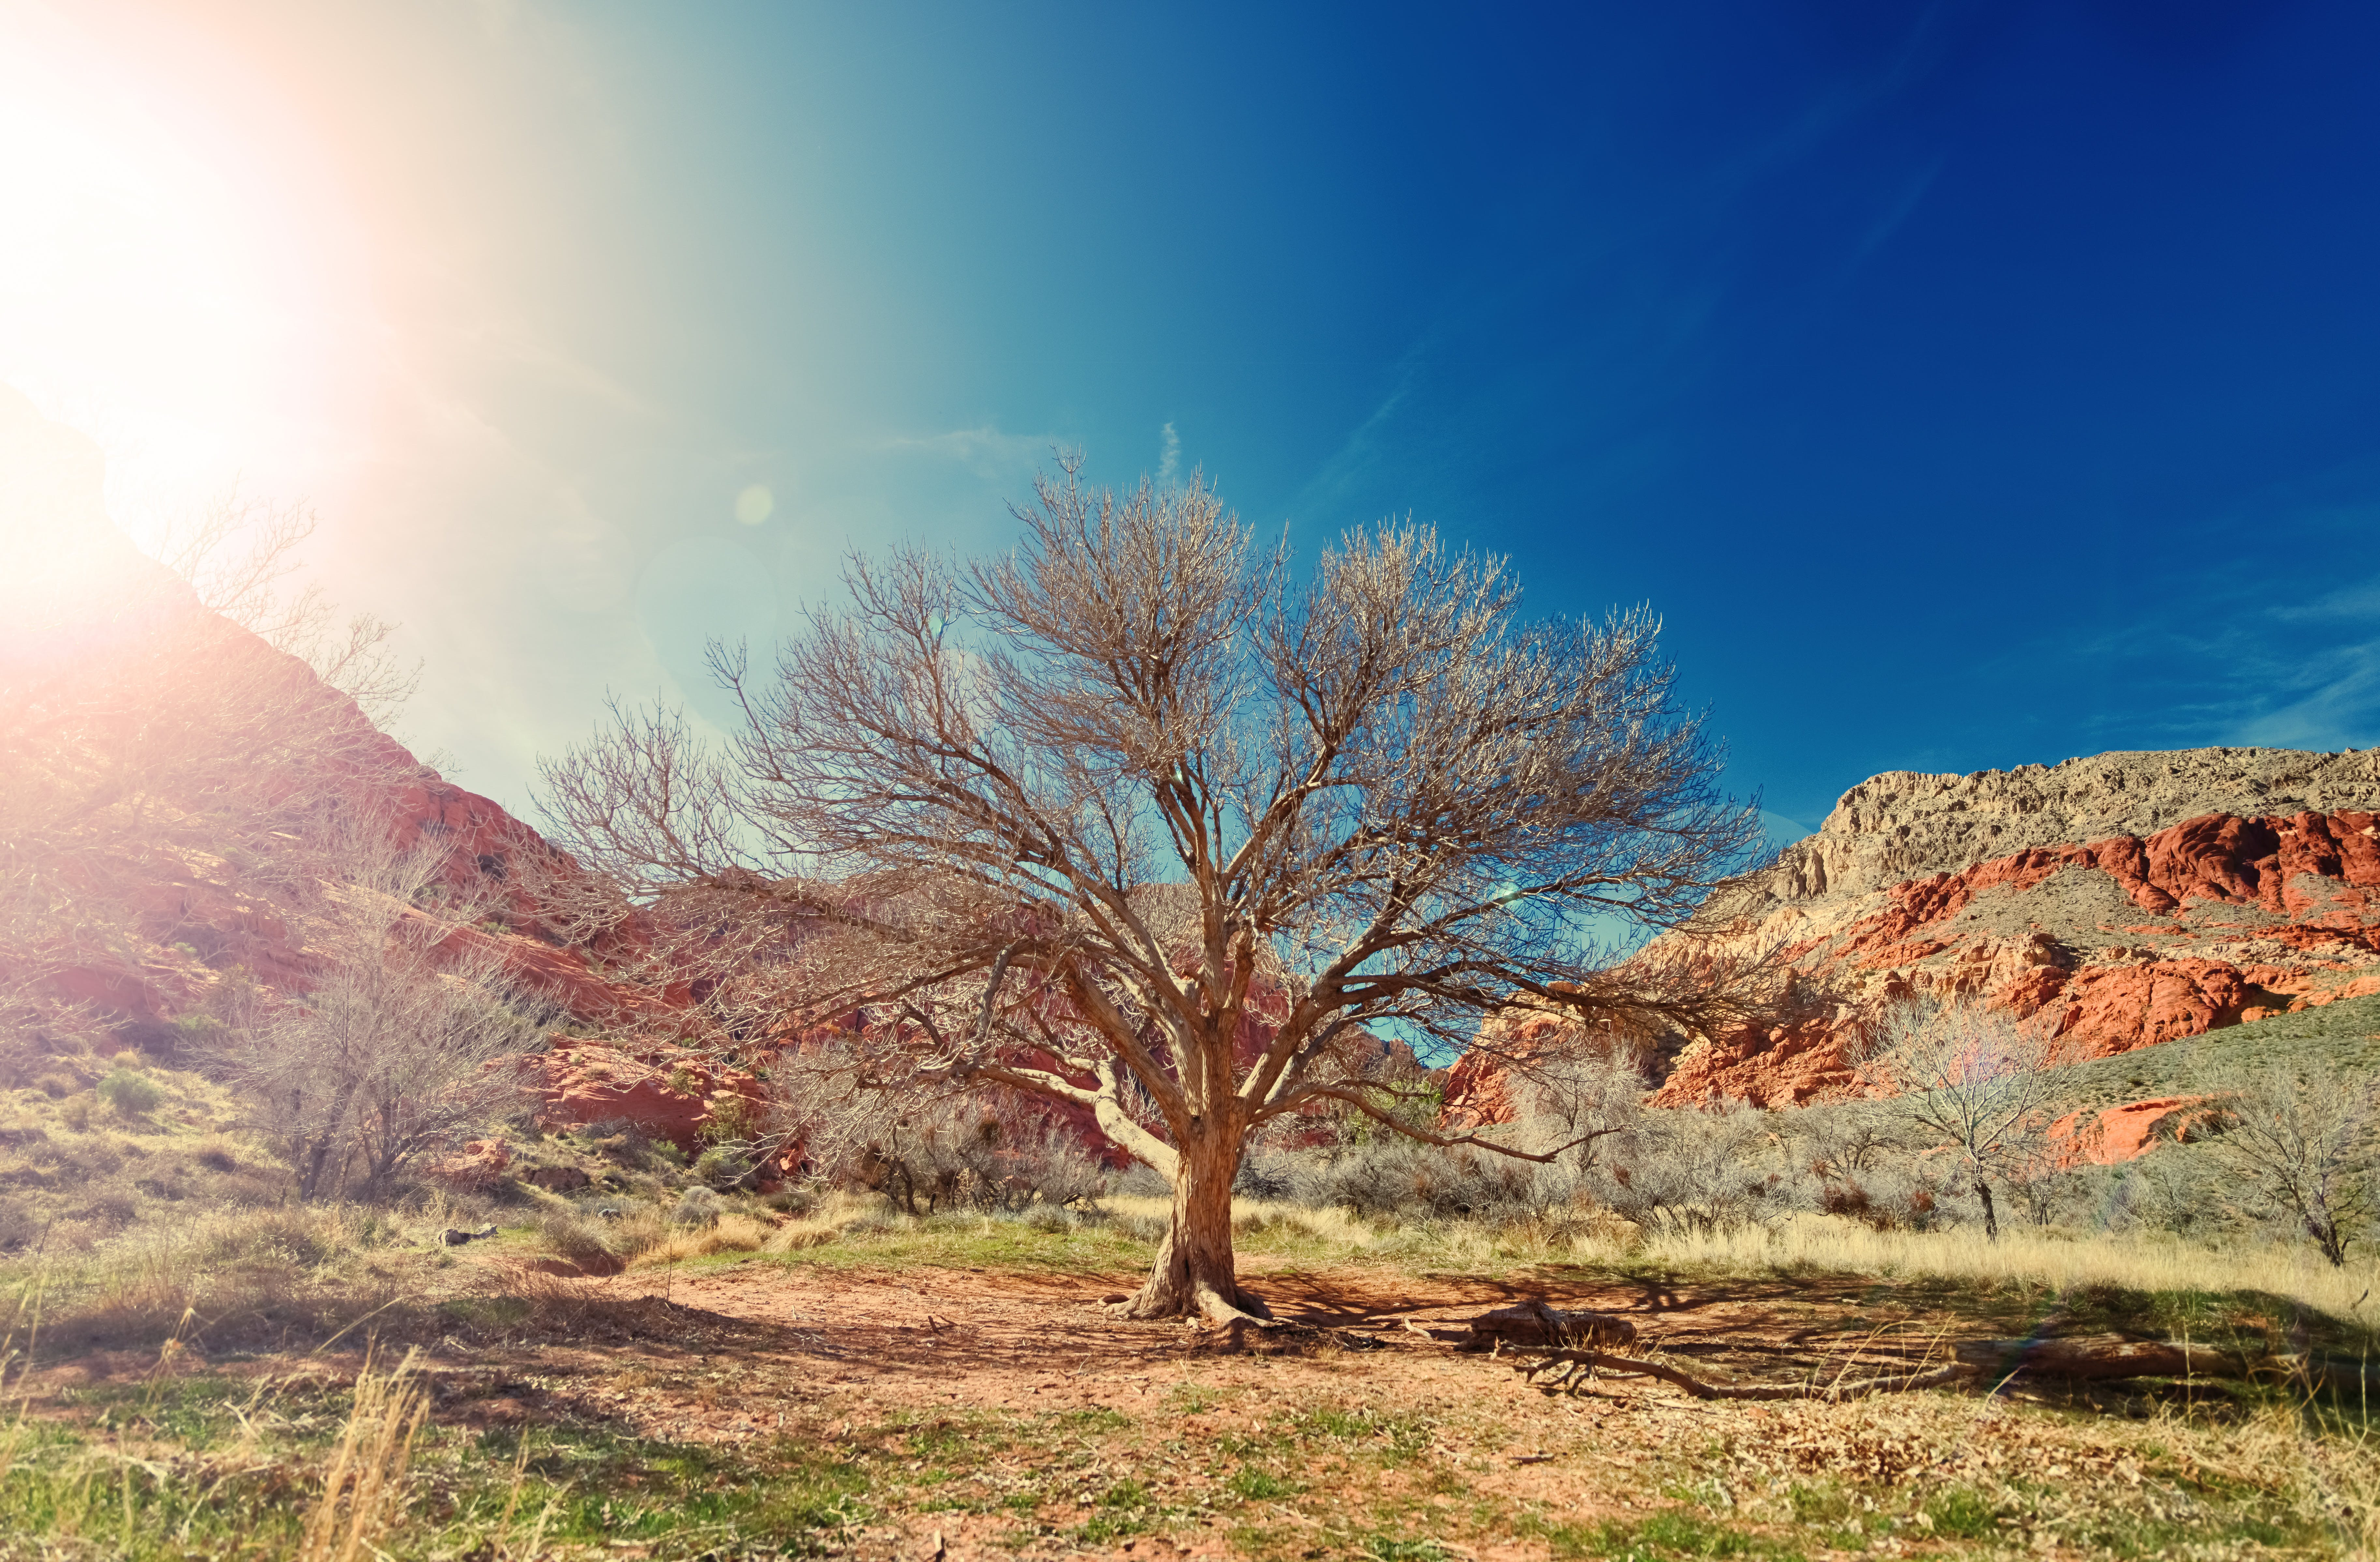 Brown Bare Tree Near Brown Rocky Mountains Under Blue Sky